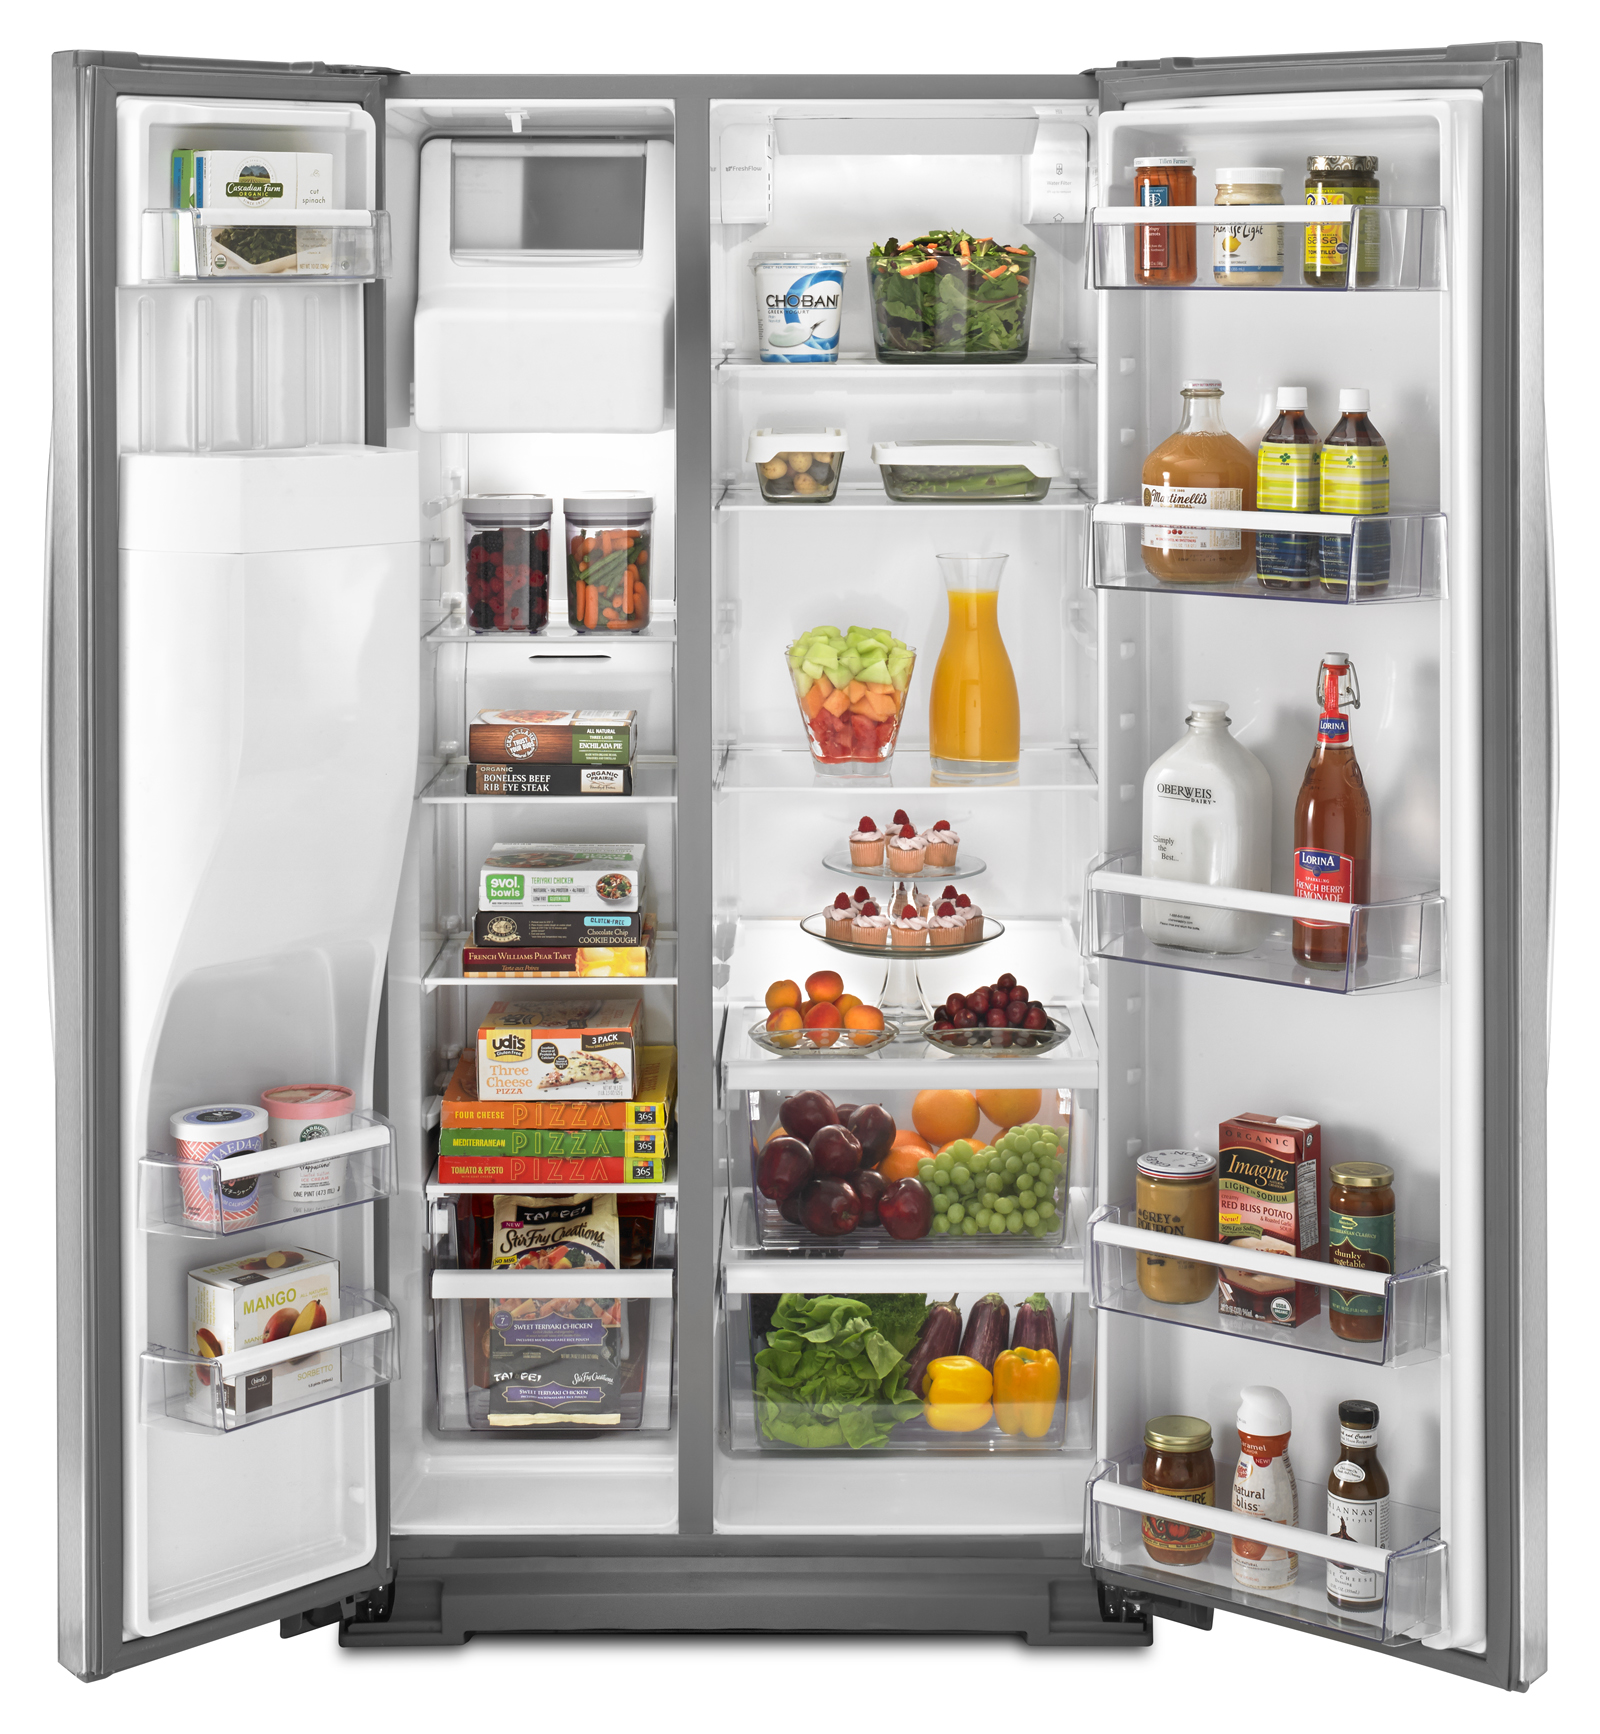 Whirlpool 21 cu. ft. Counter-Depth Side-by-Side Refrigerator - Stainless Steel